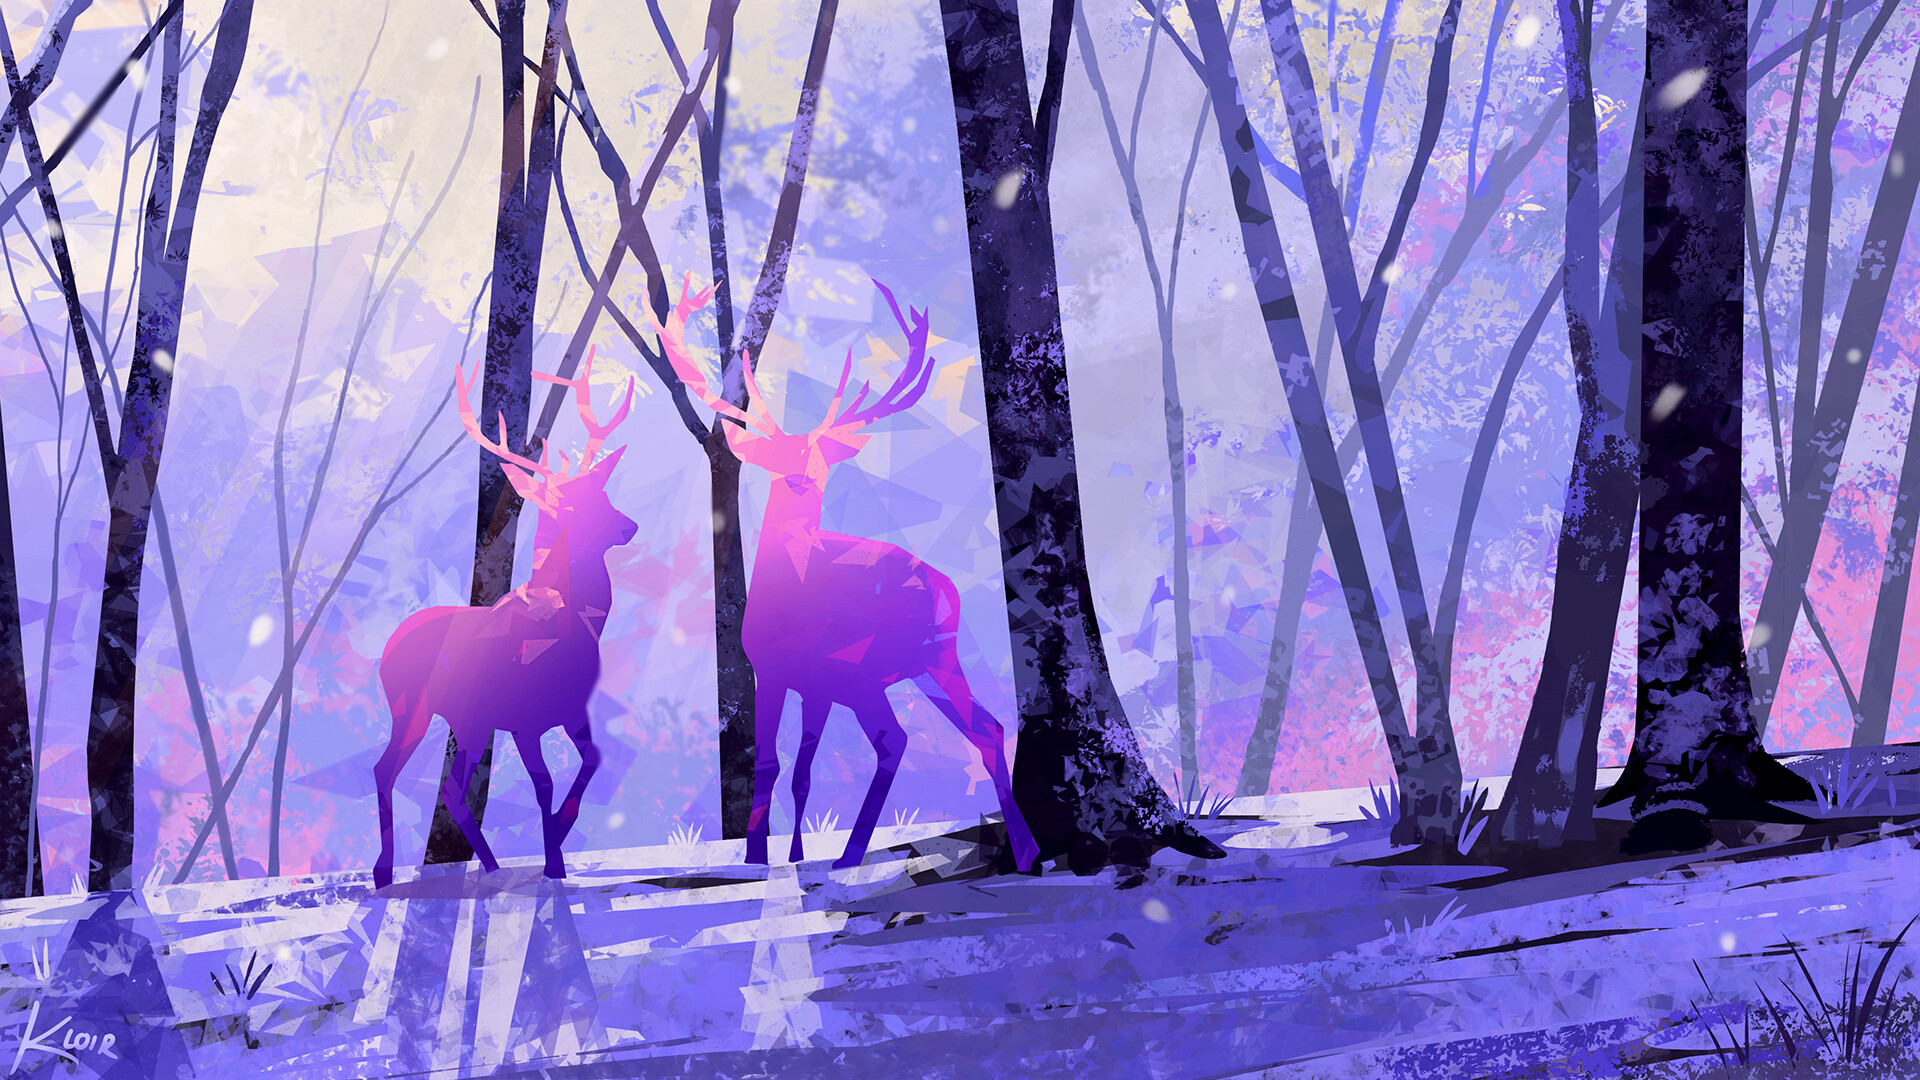 General 1920x1080 Samantha Lee artwork deer horns trees digital painting digital art forest leaves shiny animals tree bark fallen leaves ArtStation